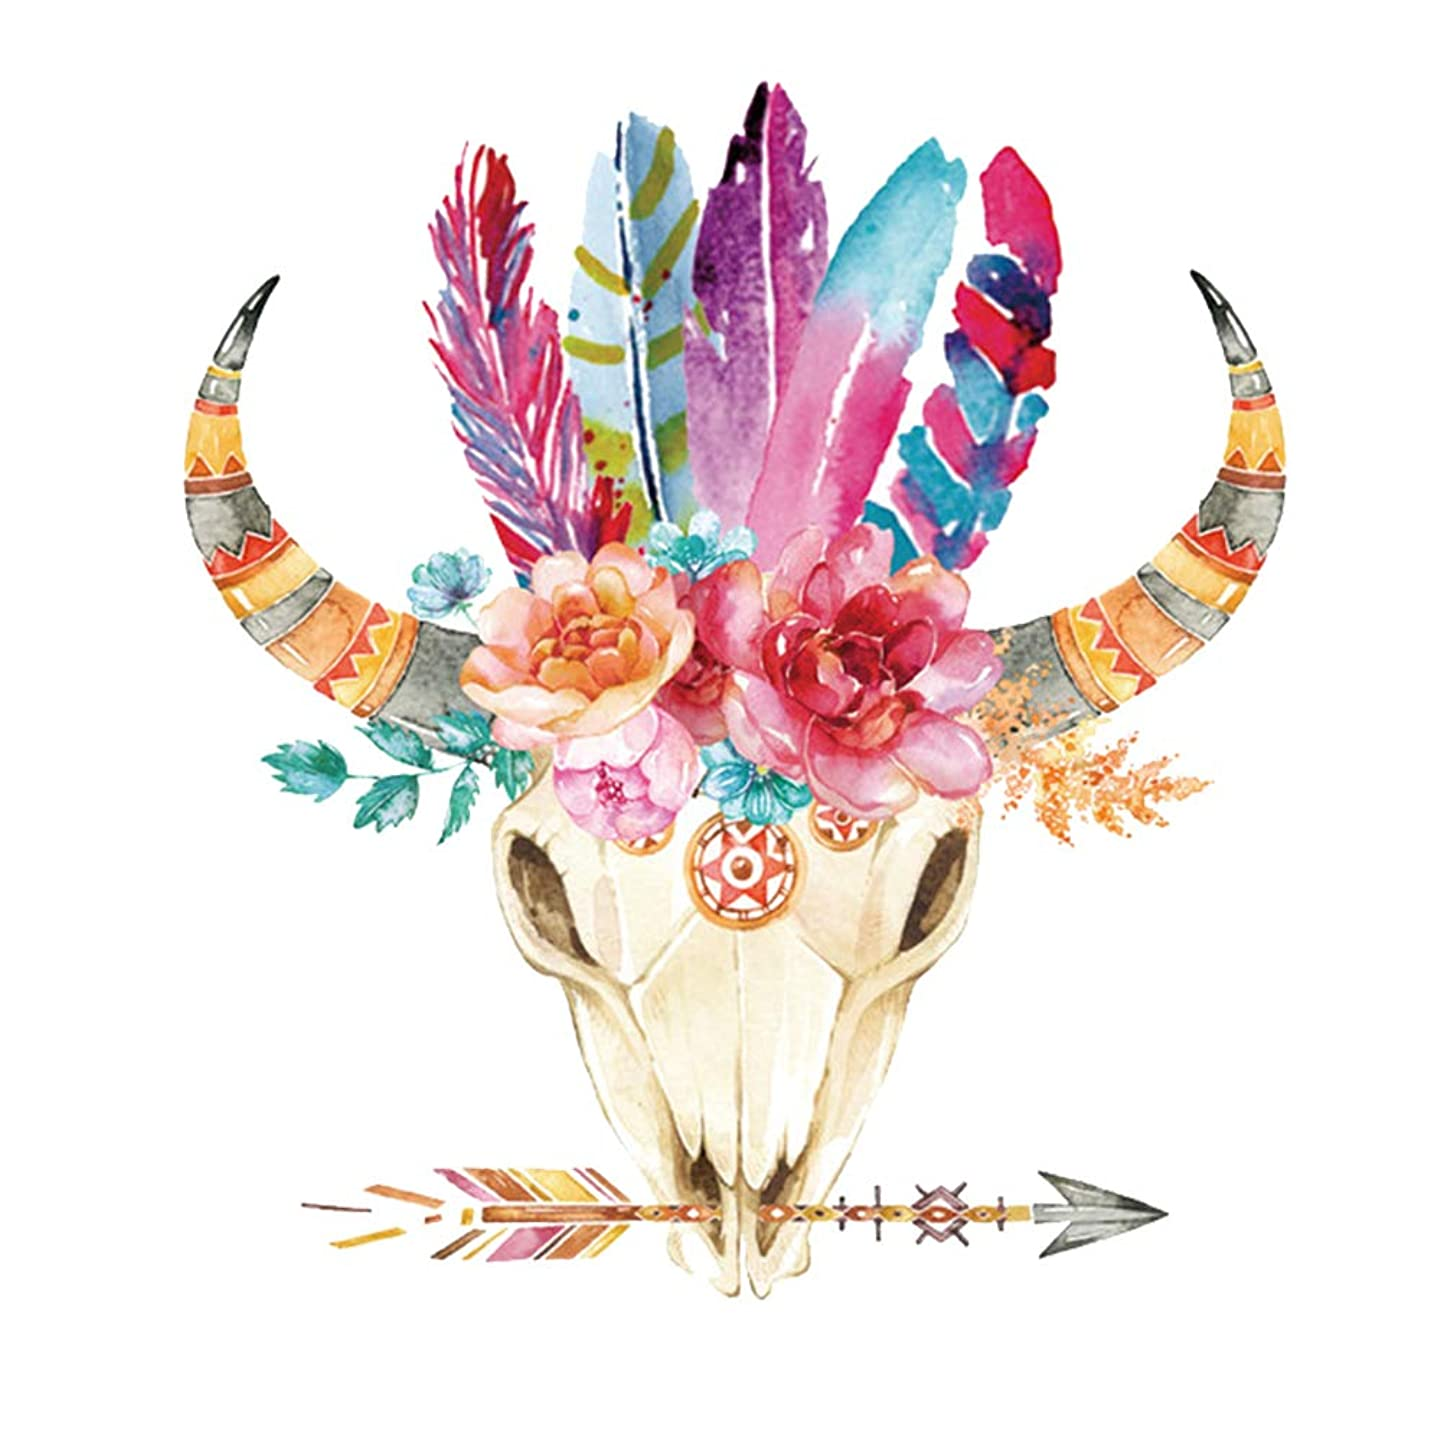 ARTEM Thermal Transfer Iron On Patches 10.2X9.3inch Indian Style Flowers Sheep Skull Stickers DIY Patch on Clothes Jacket